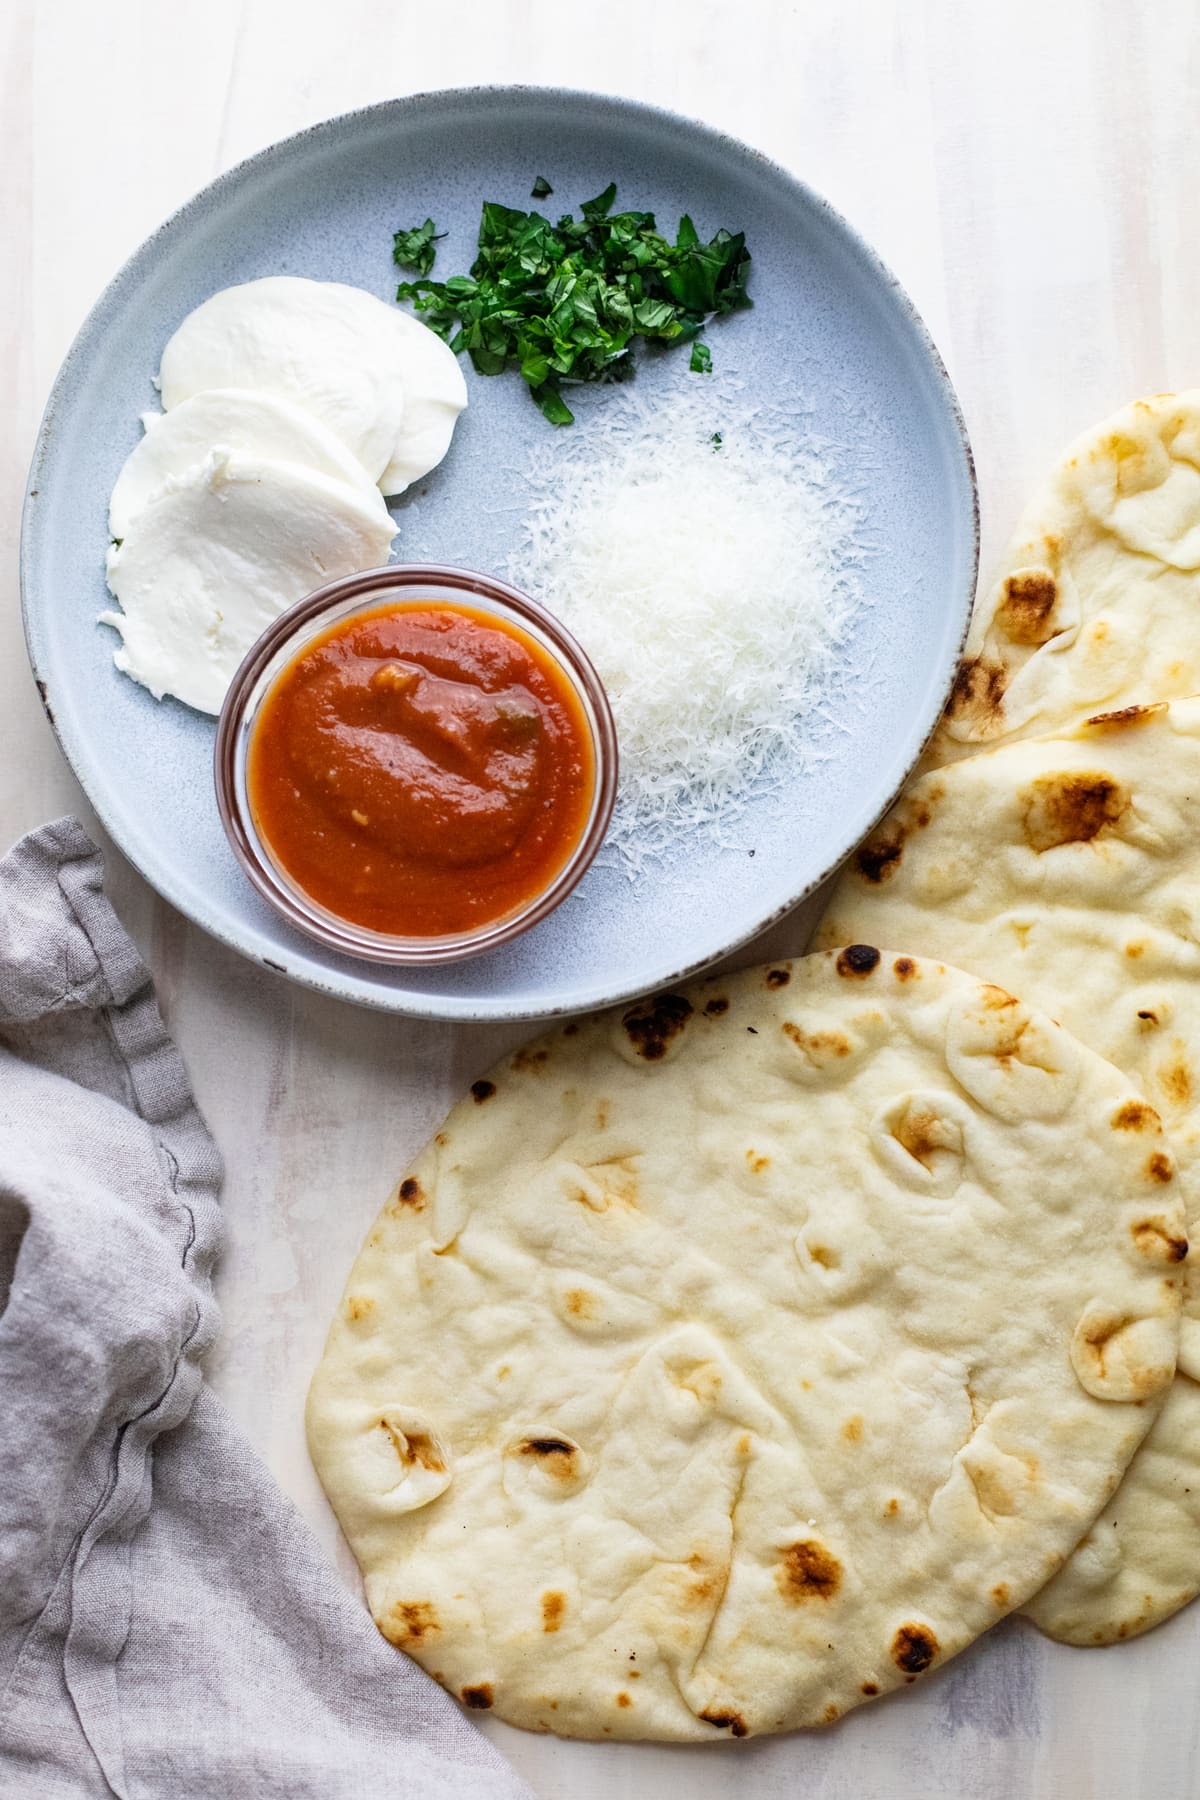 Ingredients for naan pizza arranged on a plate with naan bread next to it.